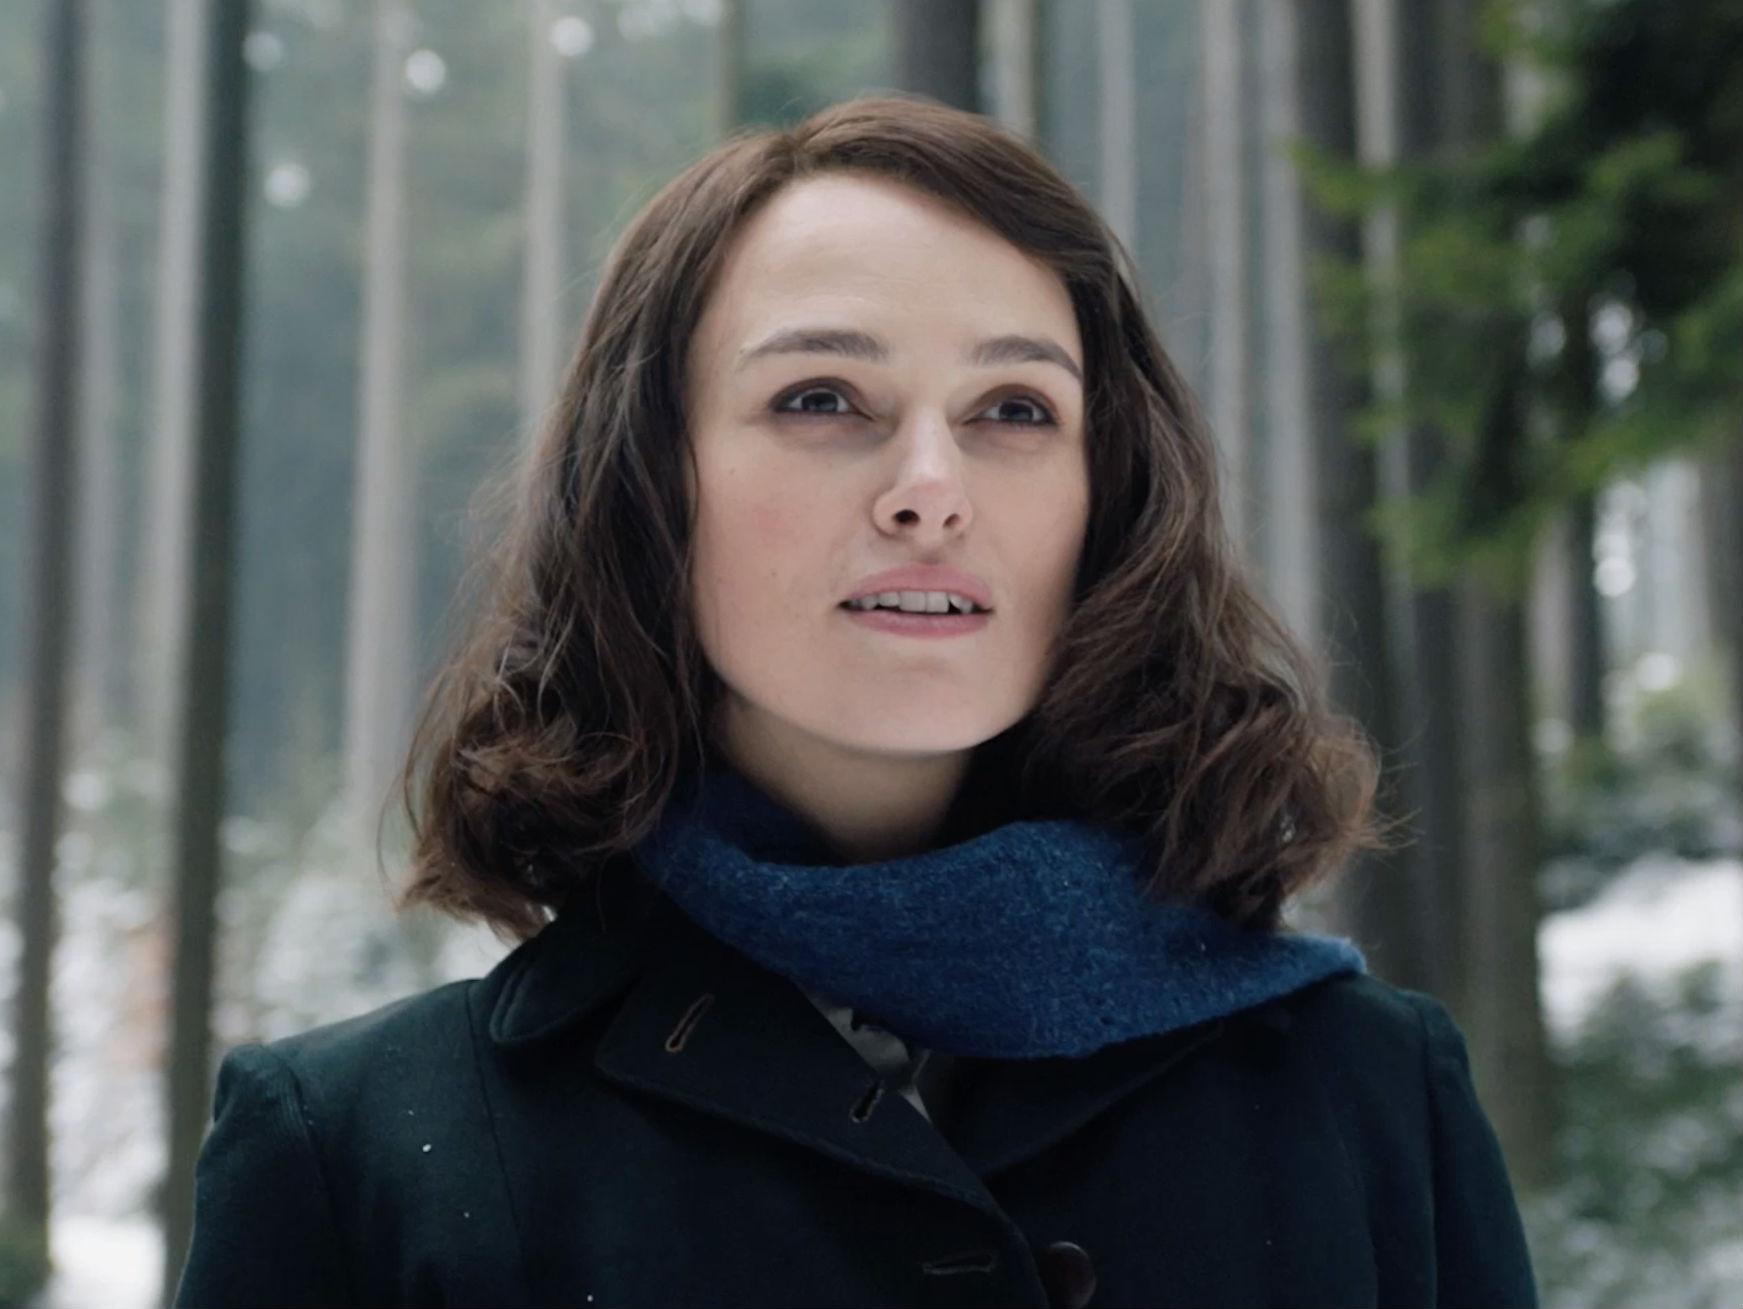 Keira Knightley reveals her one hope for fans watching new film The Aftermath